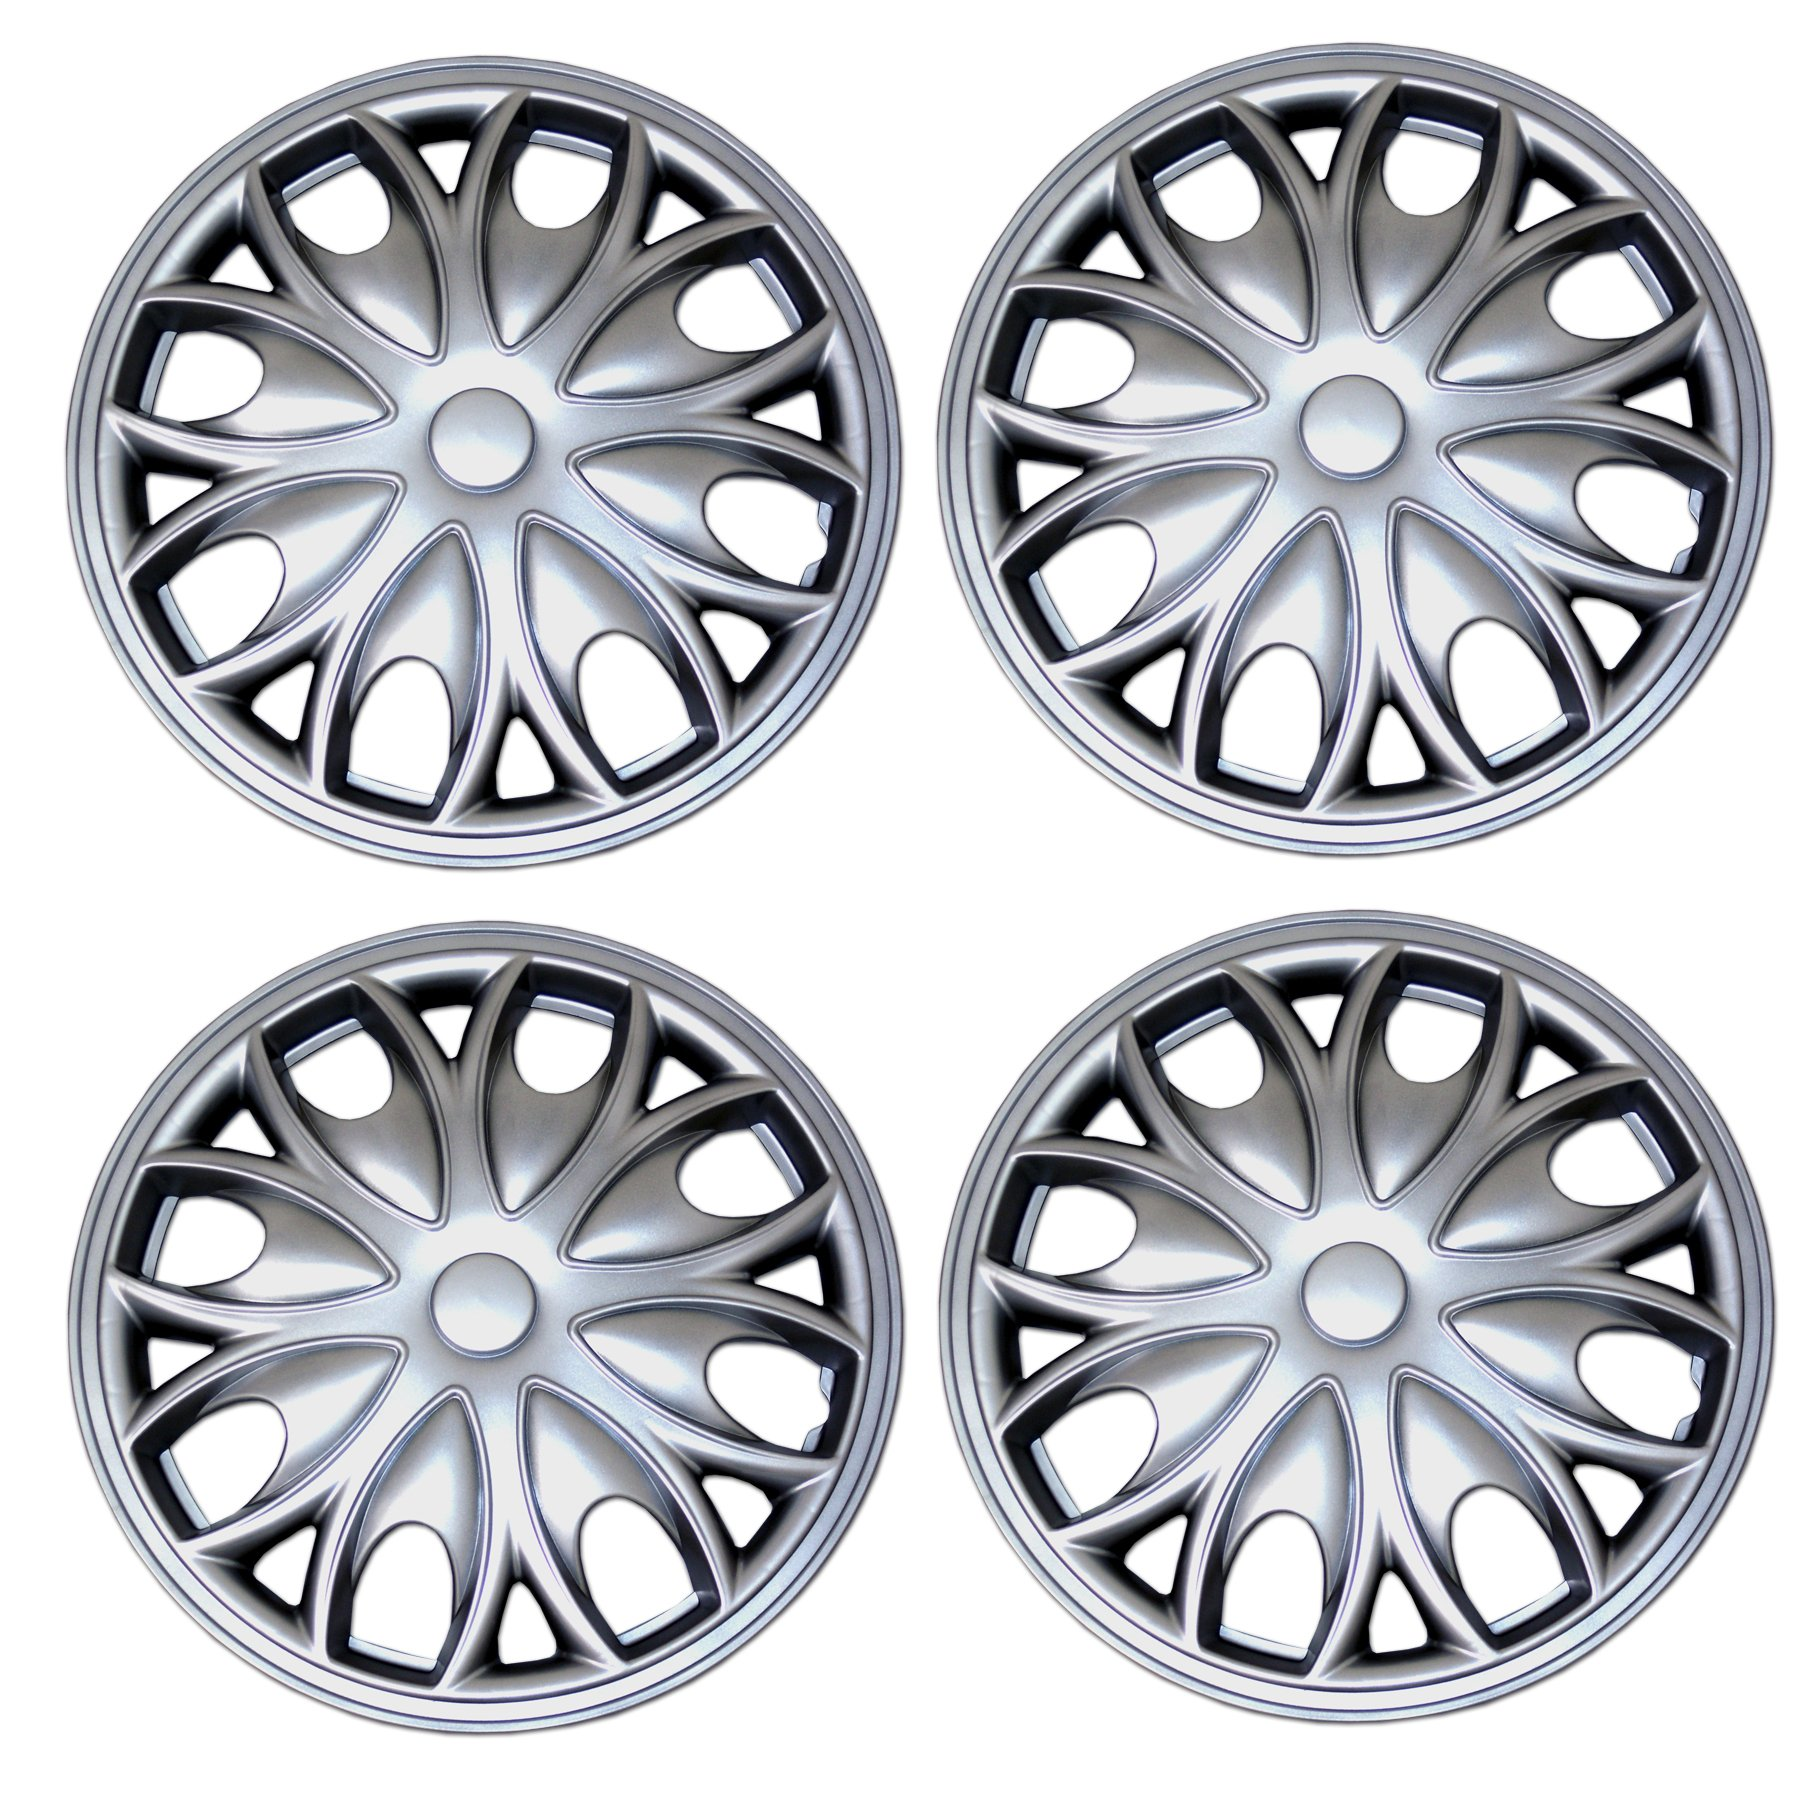 TuningPros WSC3-721S15 4pcs Set Snap-On Type 15-Inches Metallic Silver Hubcaps Wheel Cover Pop-On